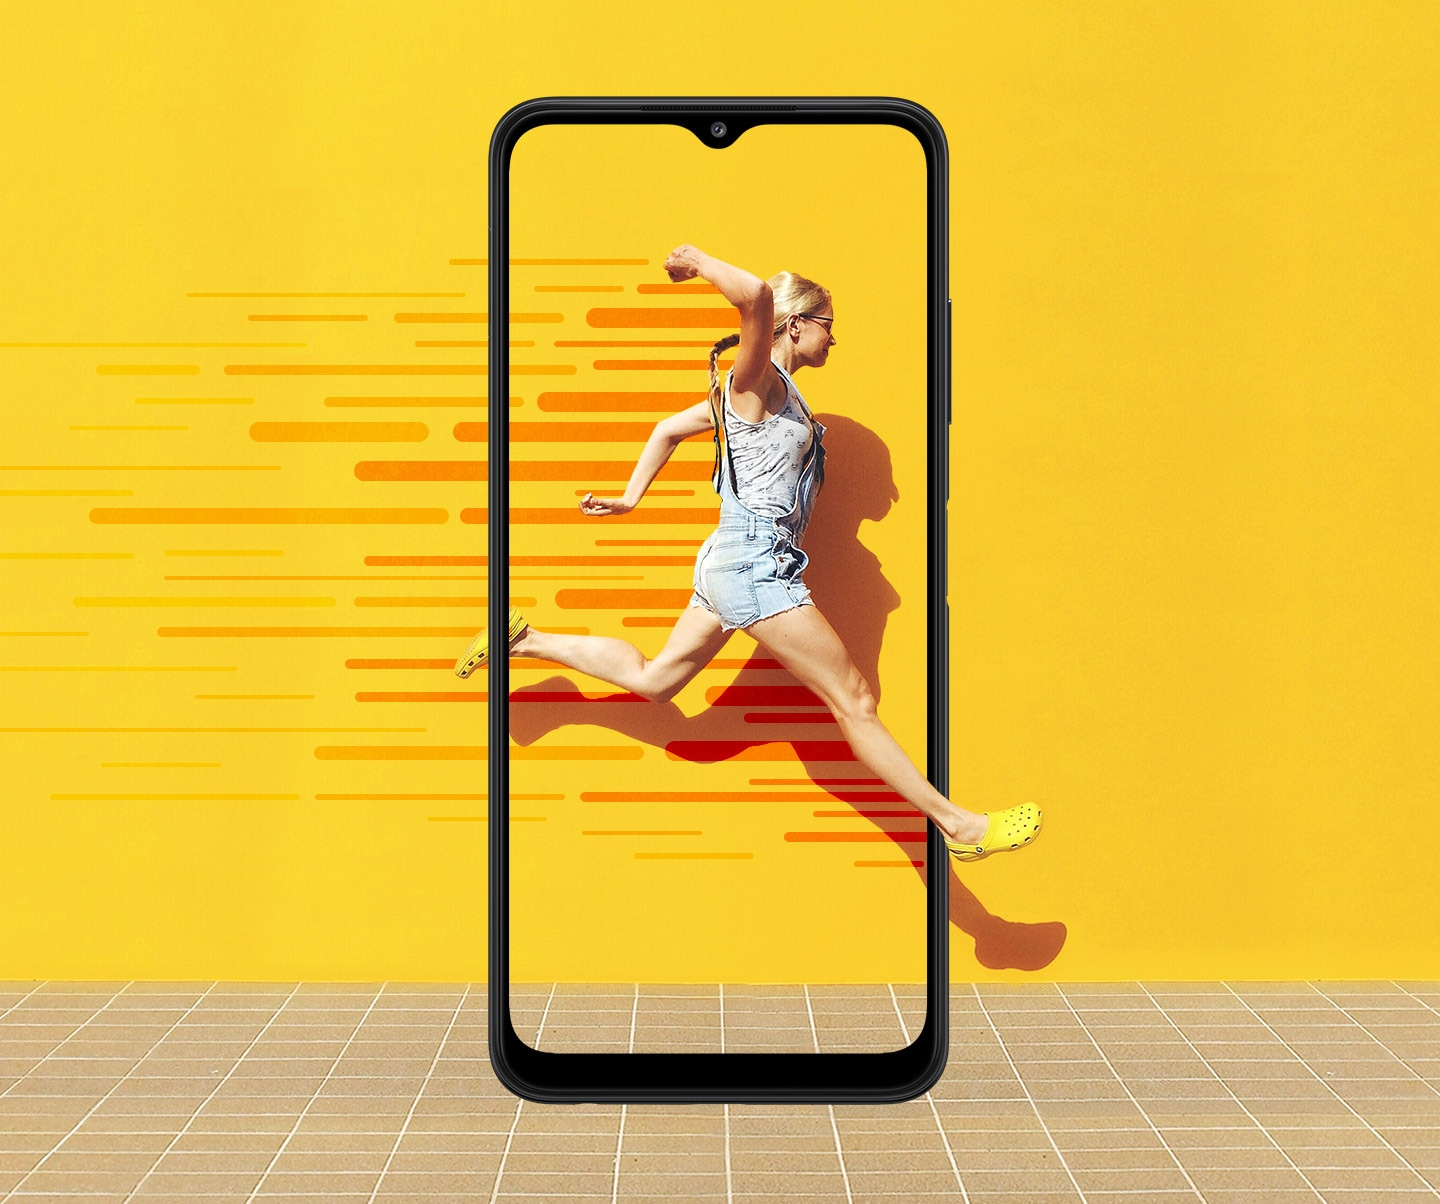 The Galaxy A22 5G is used as a frame in the foreground. Onscreen, a woman leaps foward in front of a yellow wall with dark orange illustrative lines to demonstrate movement trailing behind her. Her movement expands beyond the phone's display.